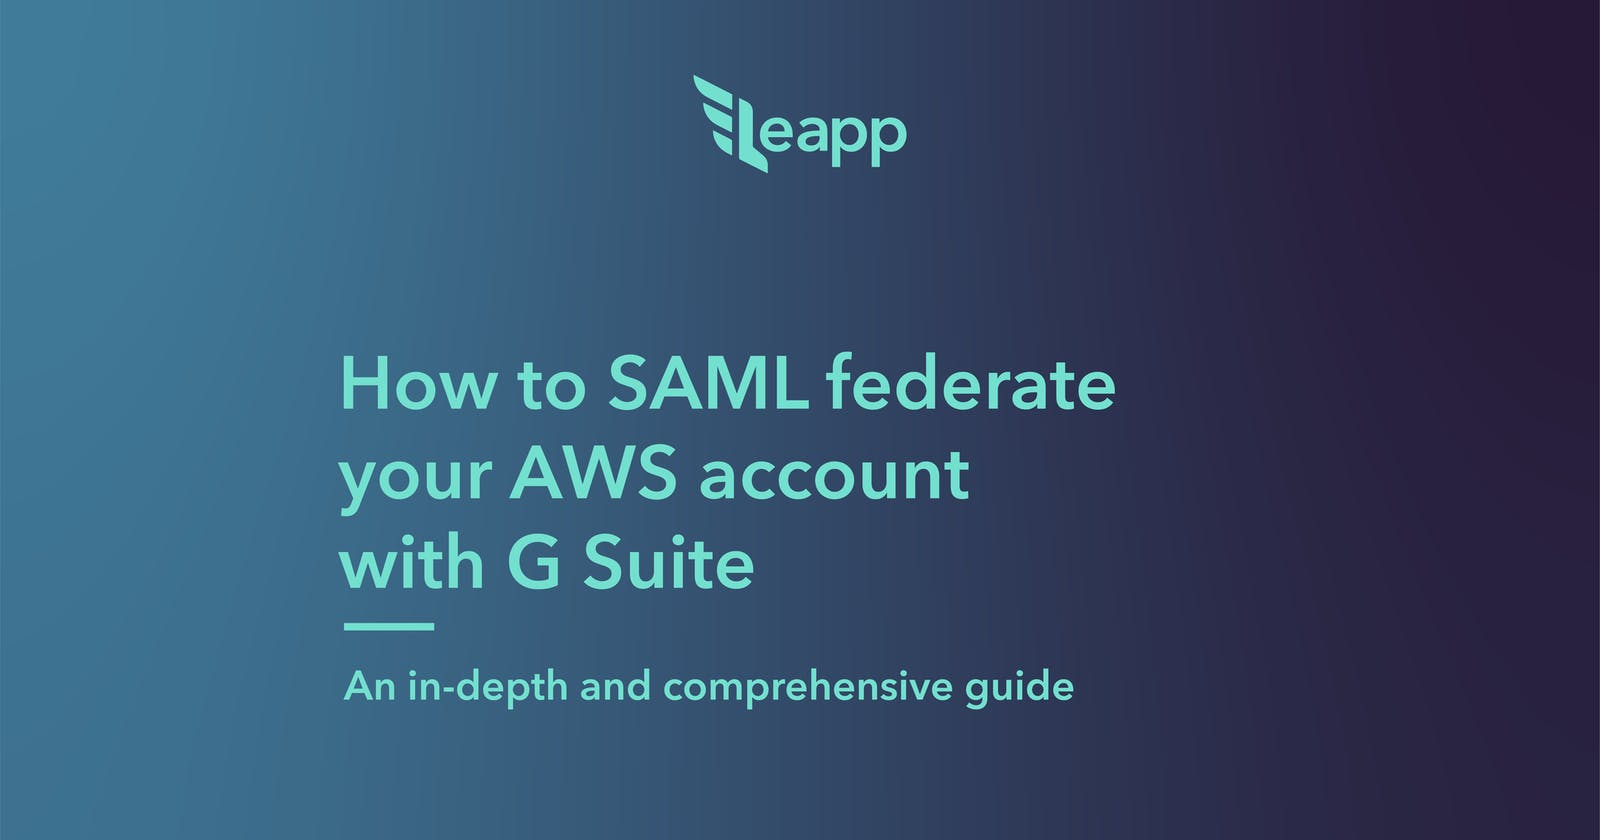 How to SAML federate your AWS account with G Suite